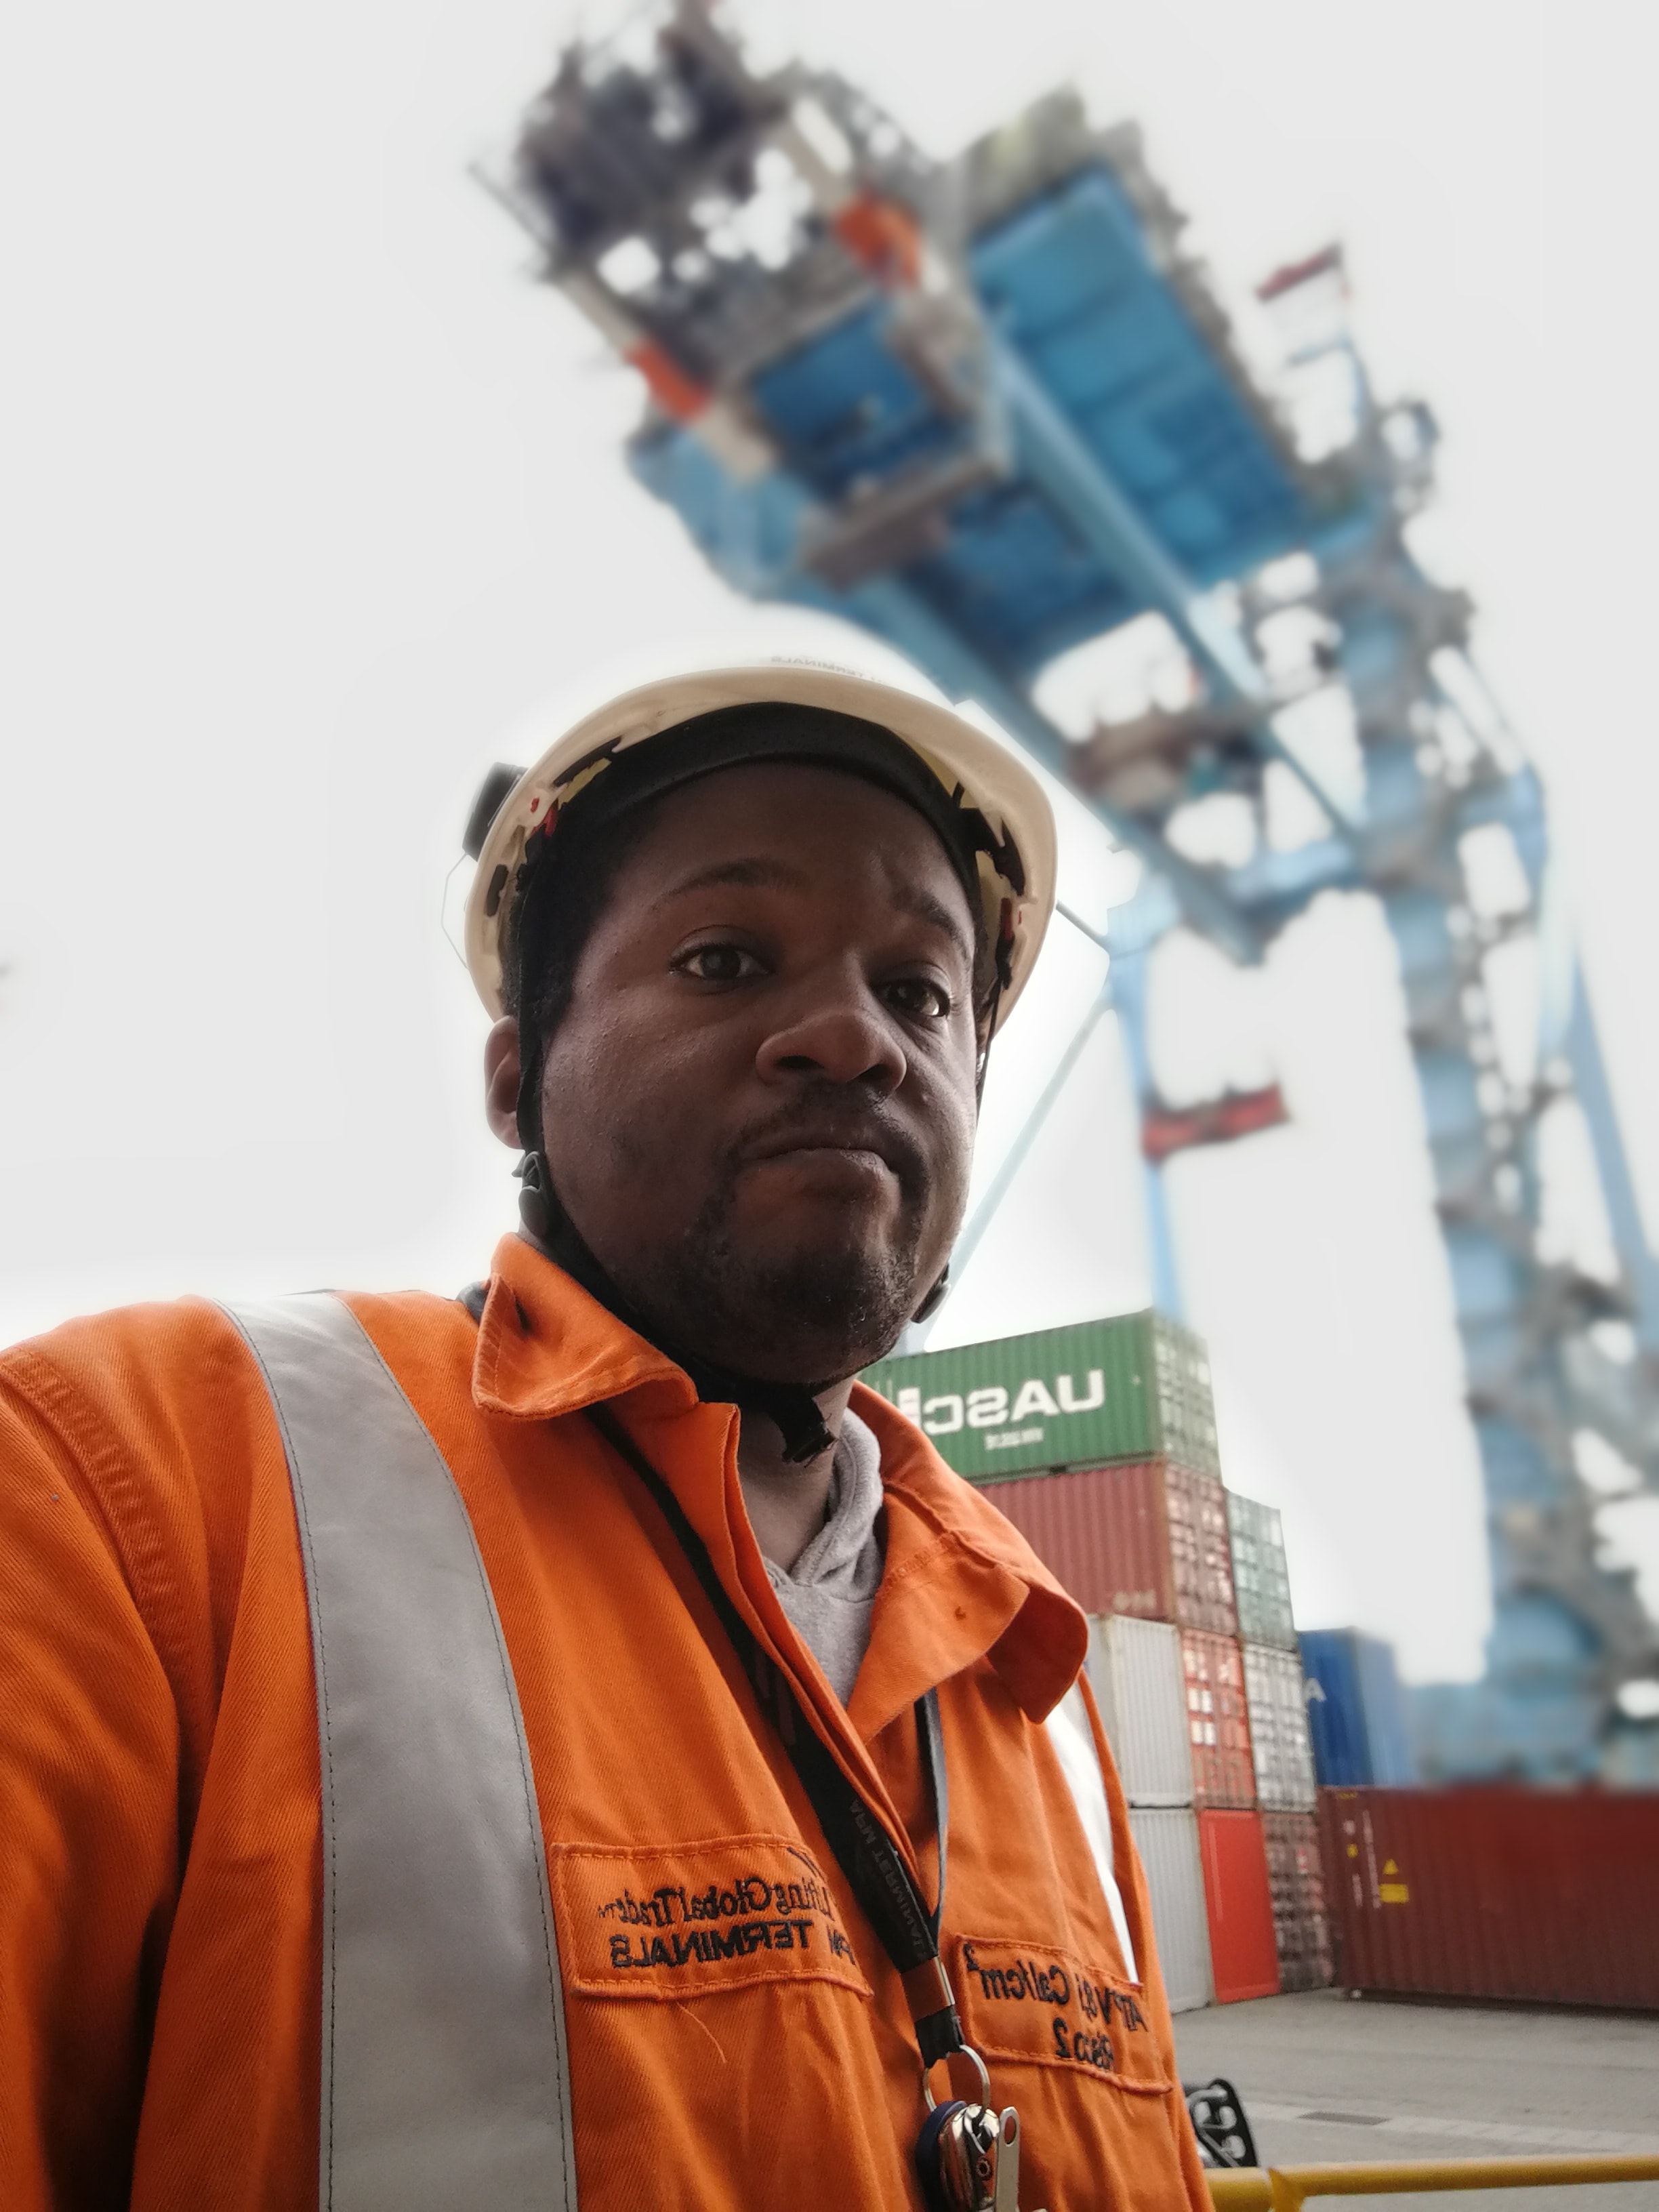 selective focus photography of man wearing hard hat and collared top